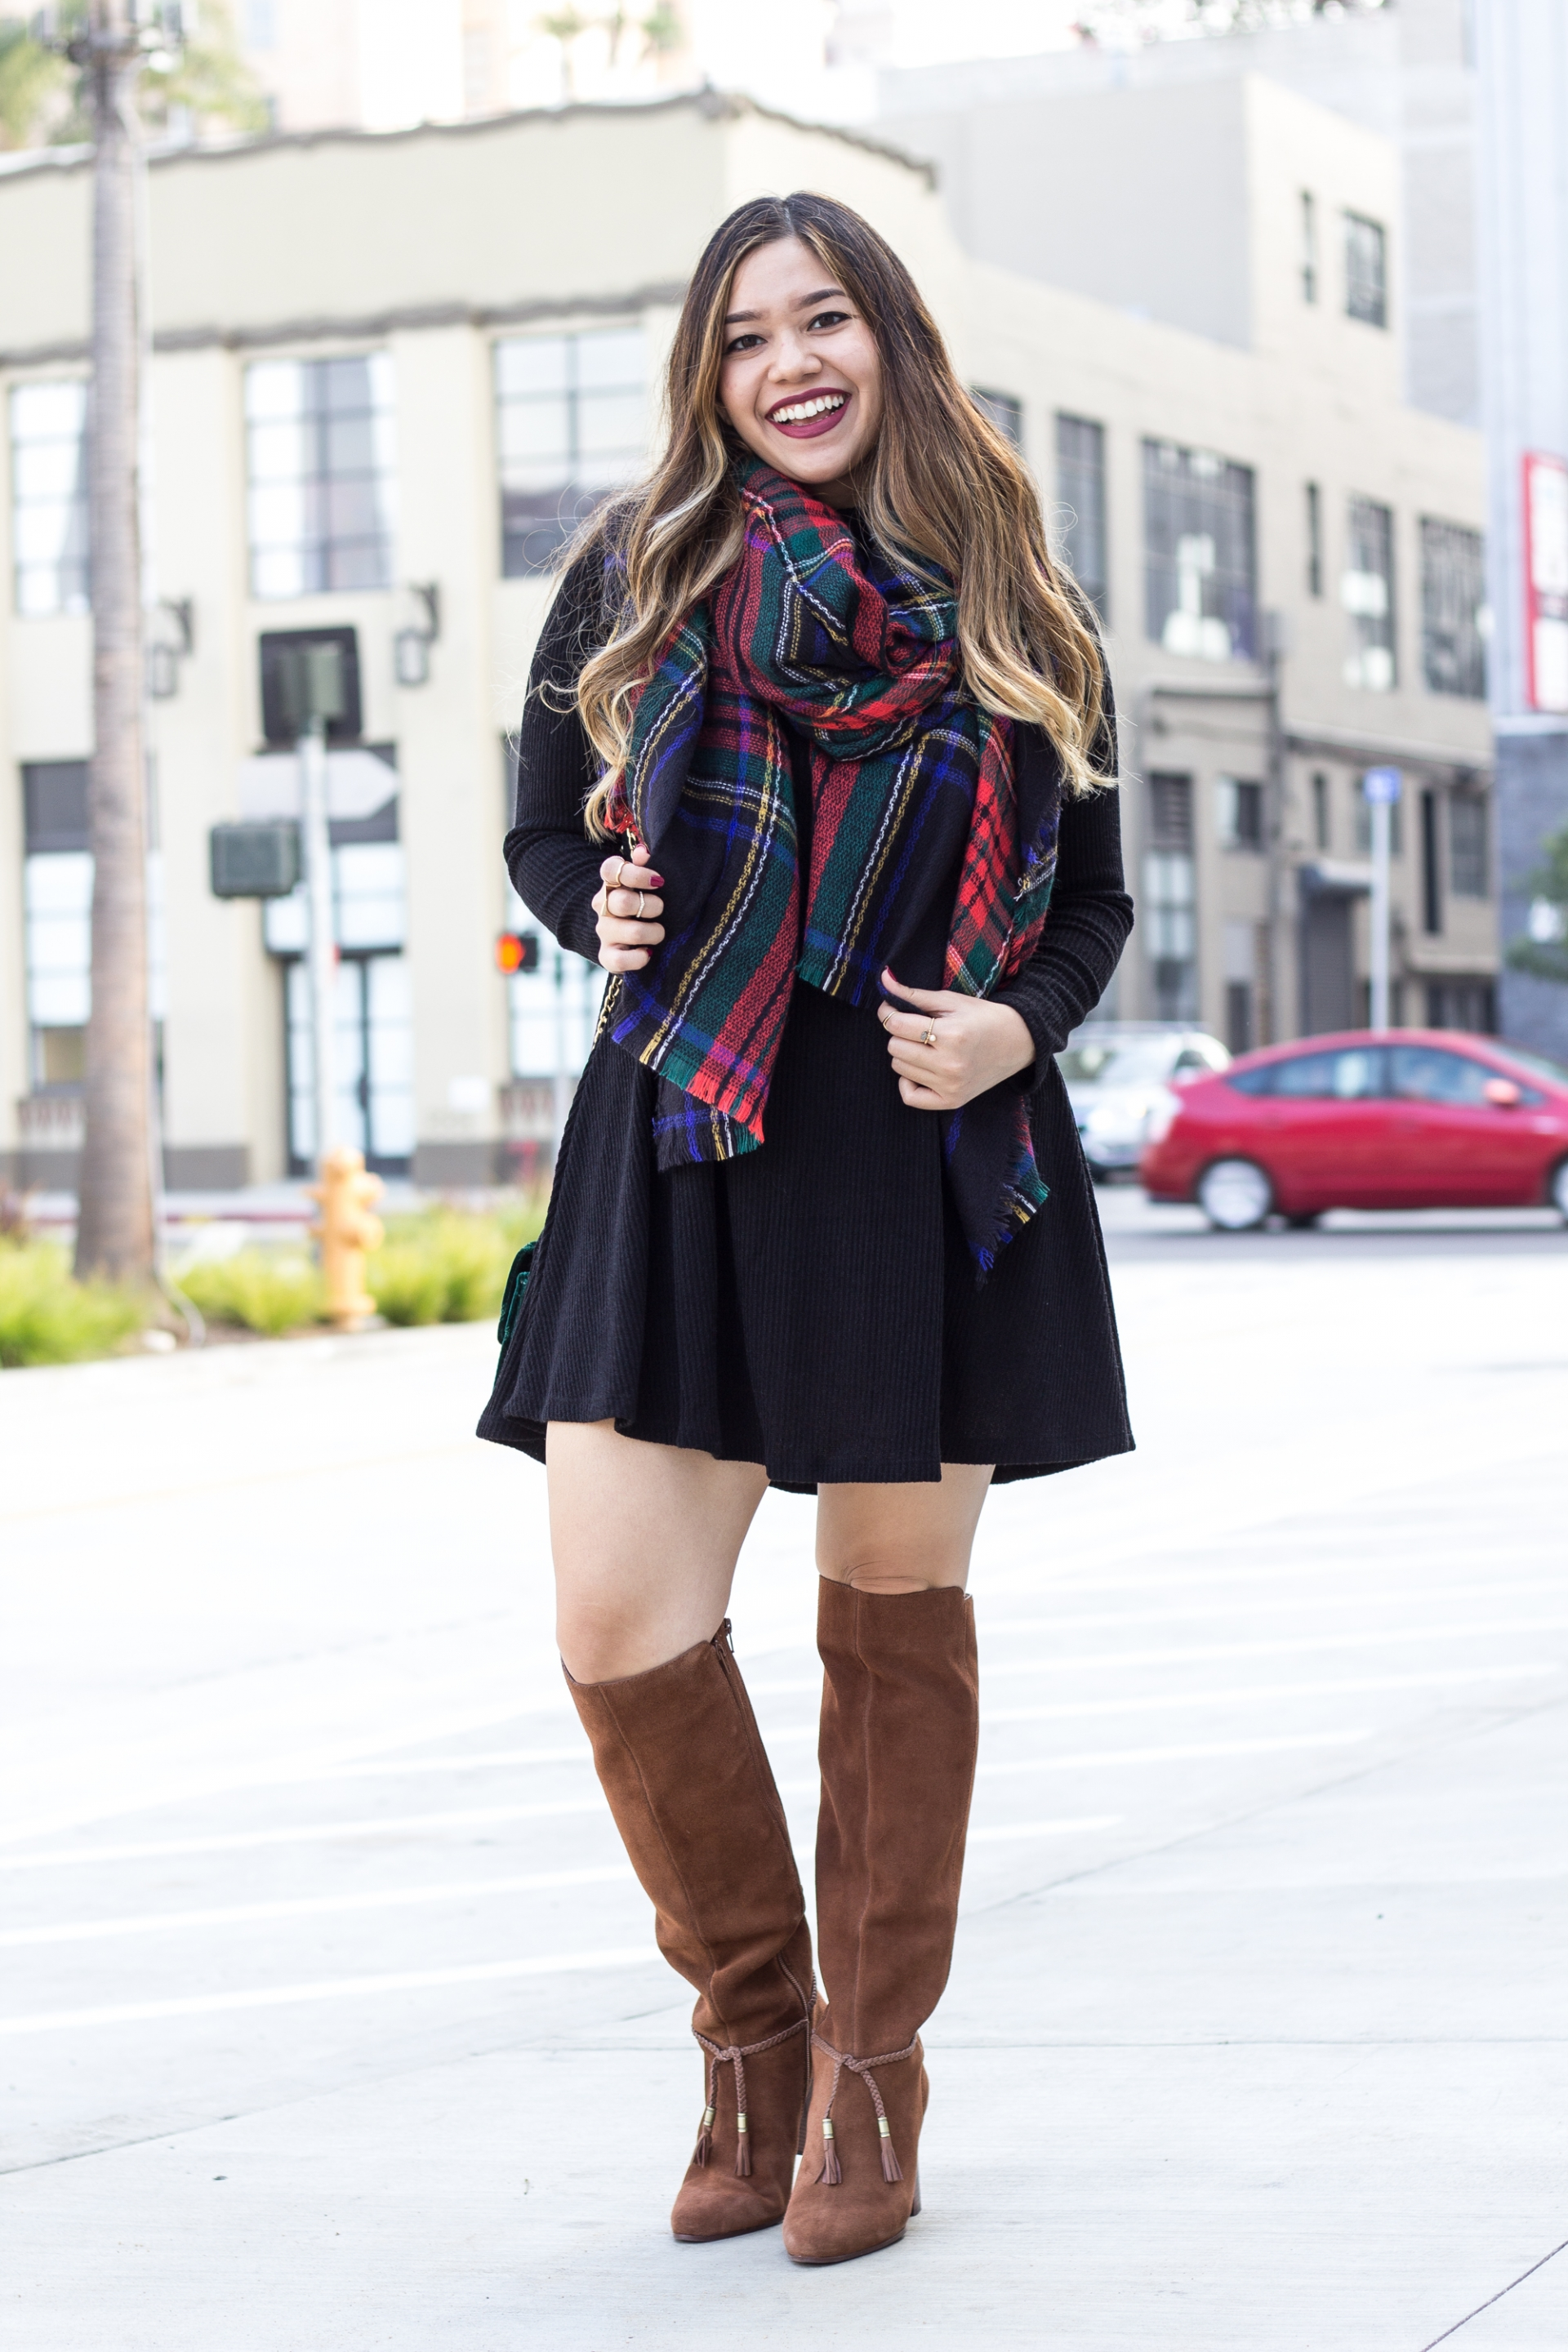 Old-Navy-Mock-Neck-Sweater-Swing-Dress-Flannel-Blanket-Scarf-Aerosoles-Dk-Tan-Suede-Square-Foot-Tall-Shafted-Boots